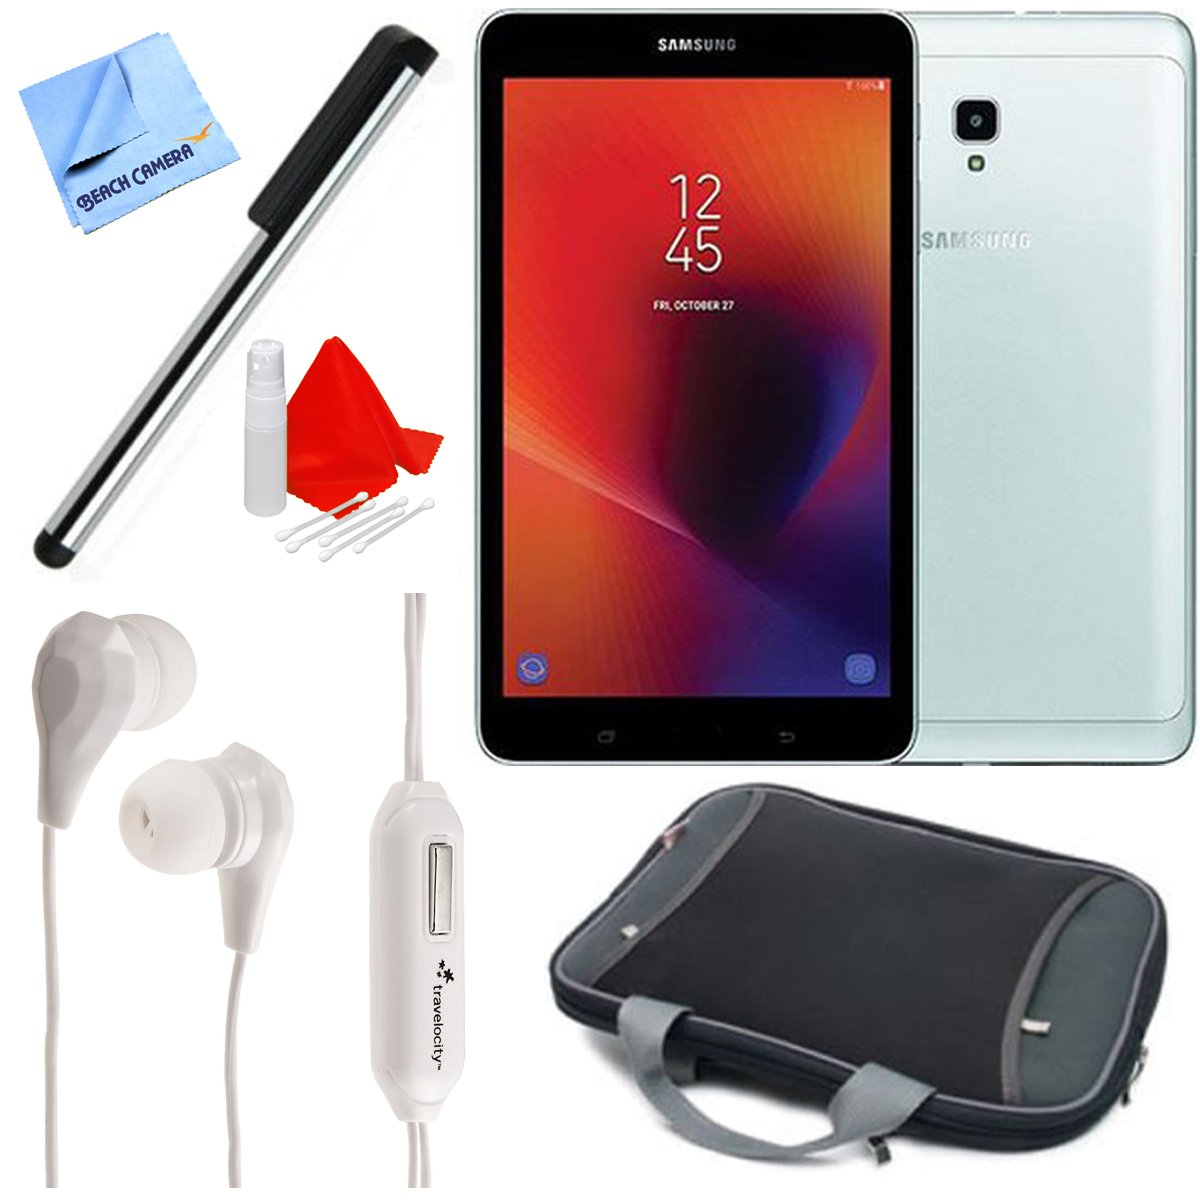 Samsung SM-T380NZSEXAR 8'' Galaxy Tab A 32GB Tablet (2017) (Silver) Deluxe Bundle with Stylus Pen, In-Ear Headphones, and Tablet Case